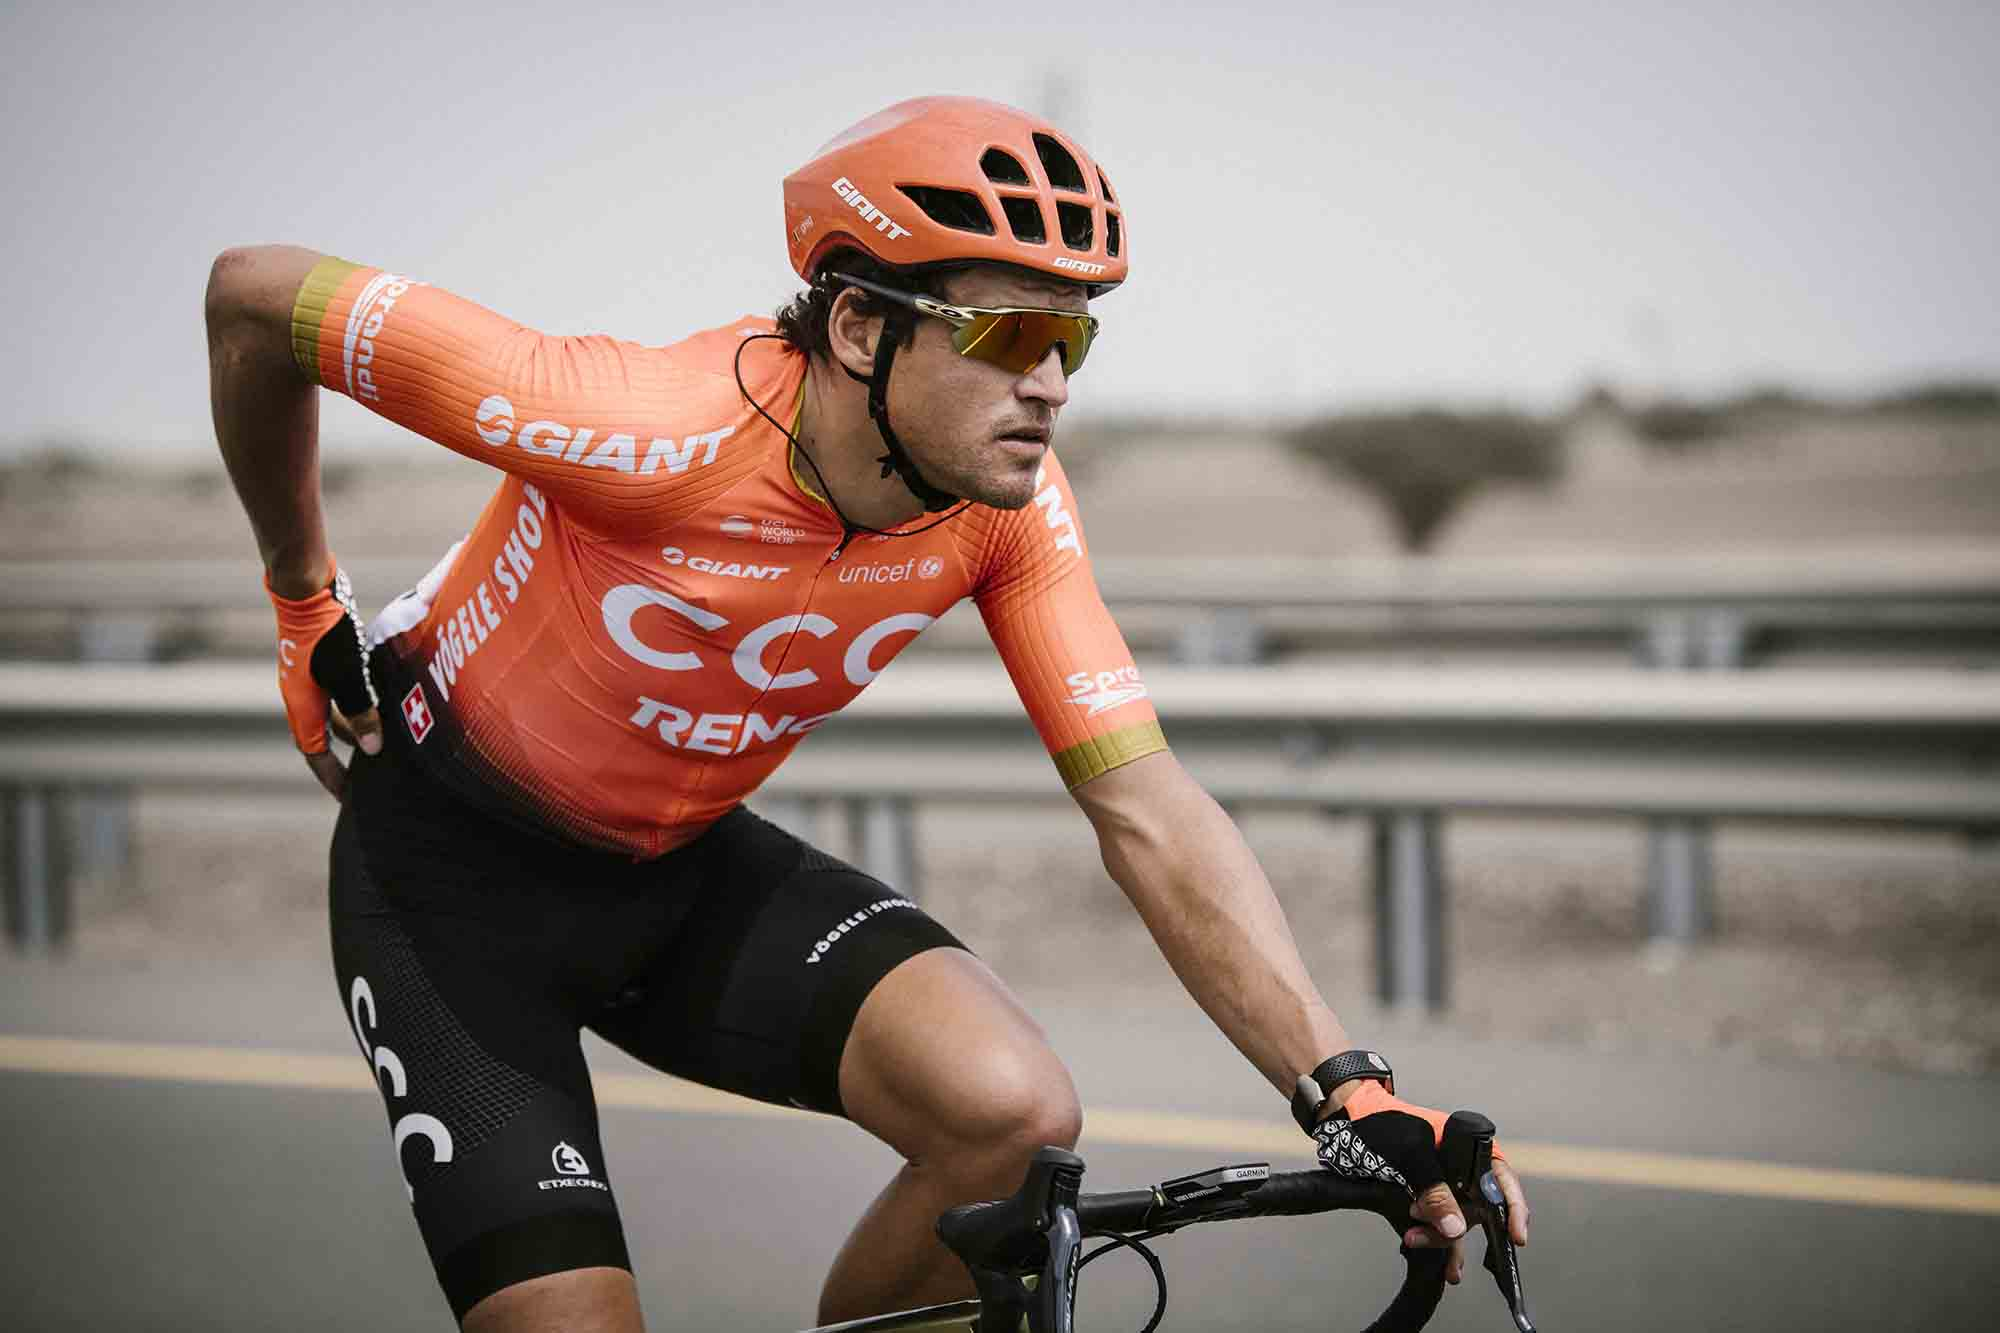 17/02/2019 – Tour of Oman - Stage 2 - Royal Cavalry Oman - Al Bustan - Greg VAN AVERMAET (CPT)